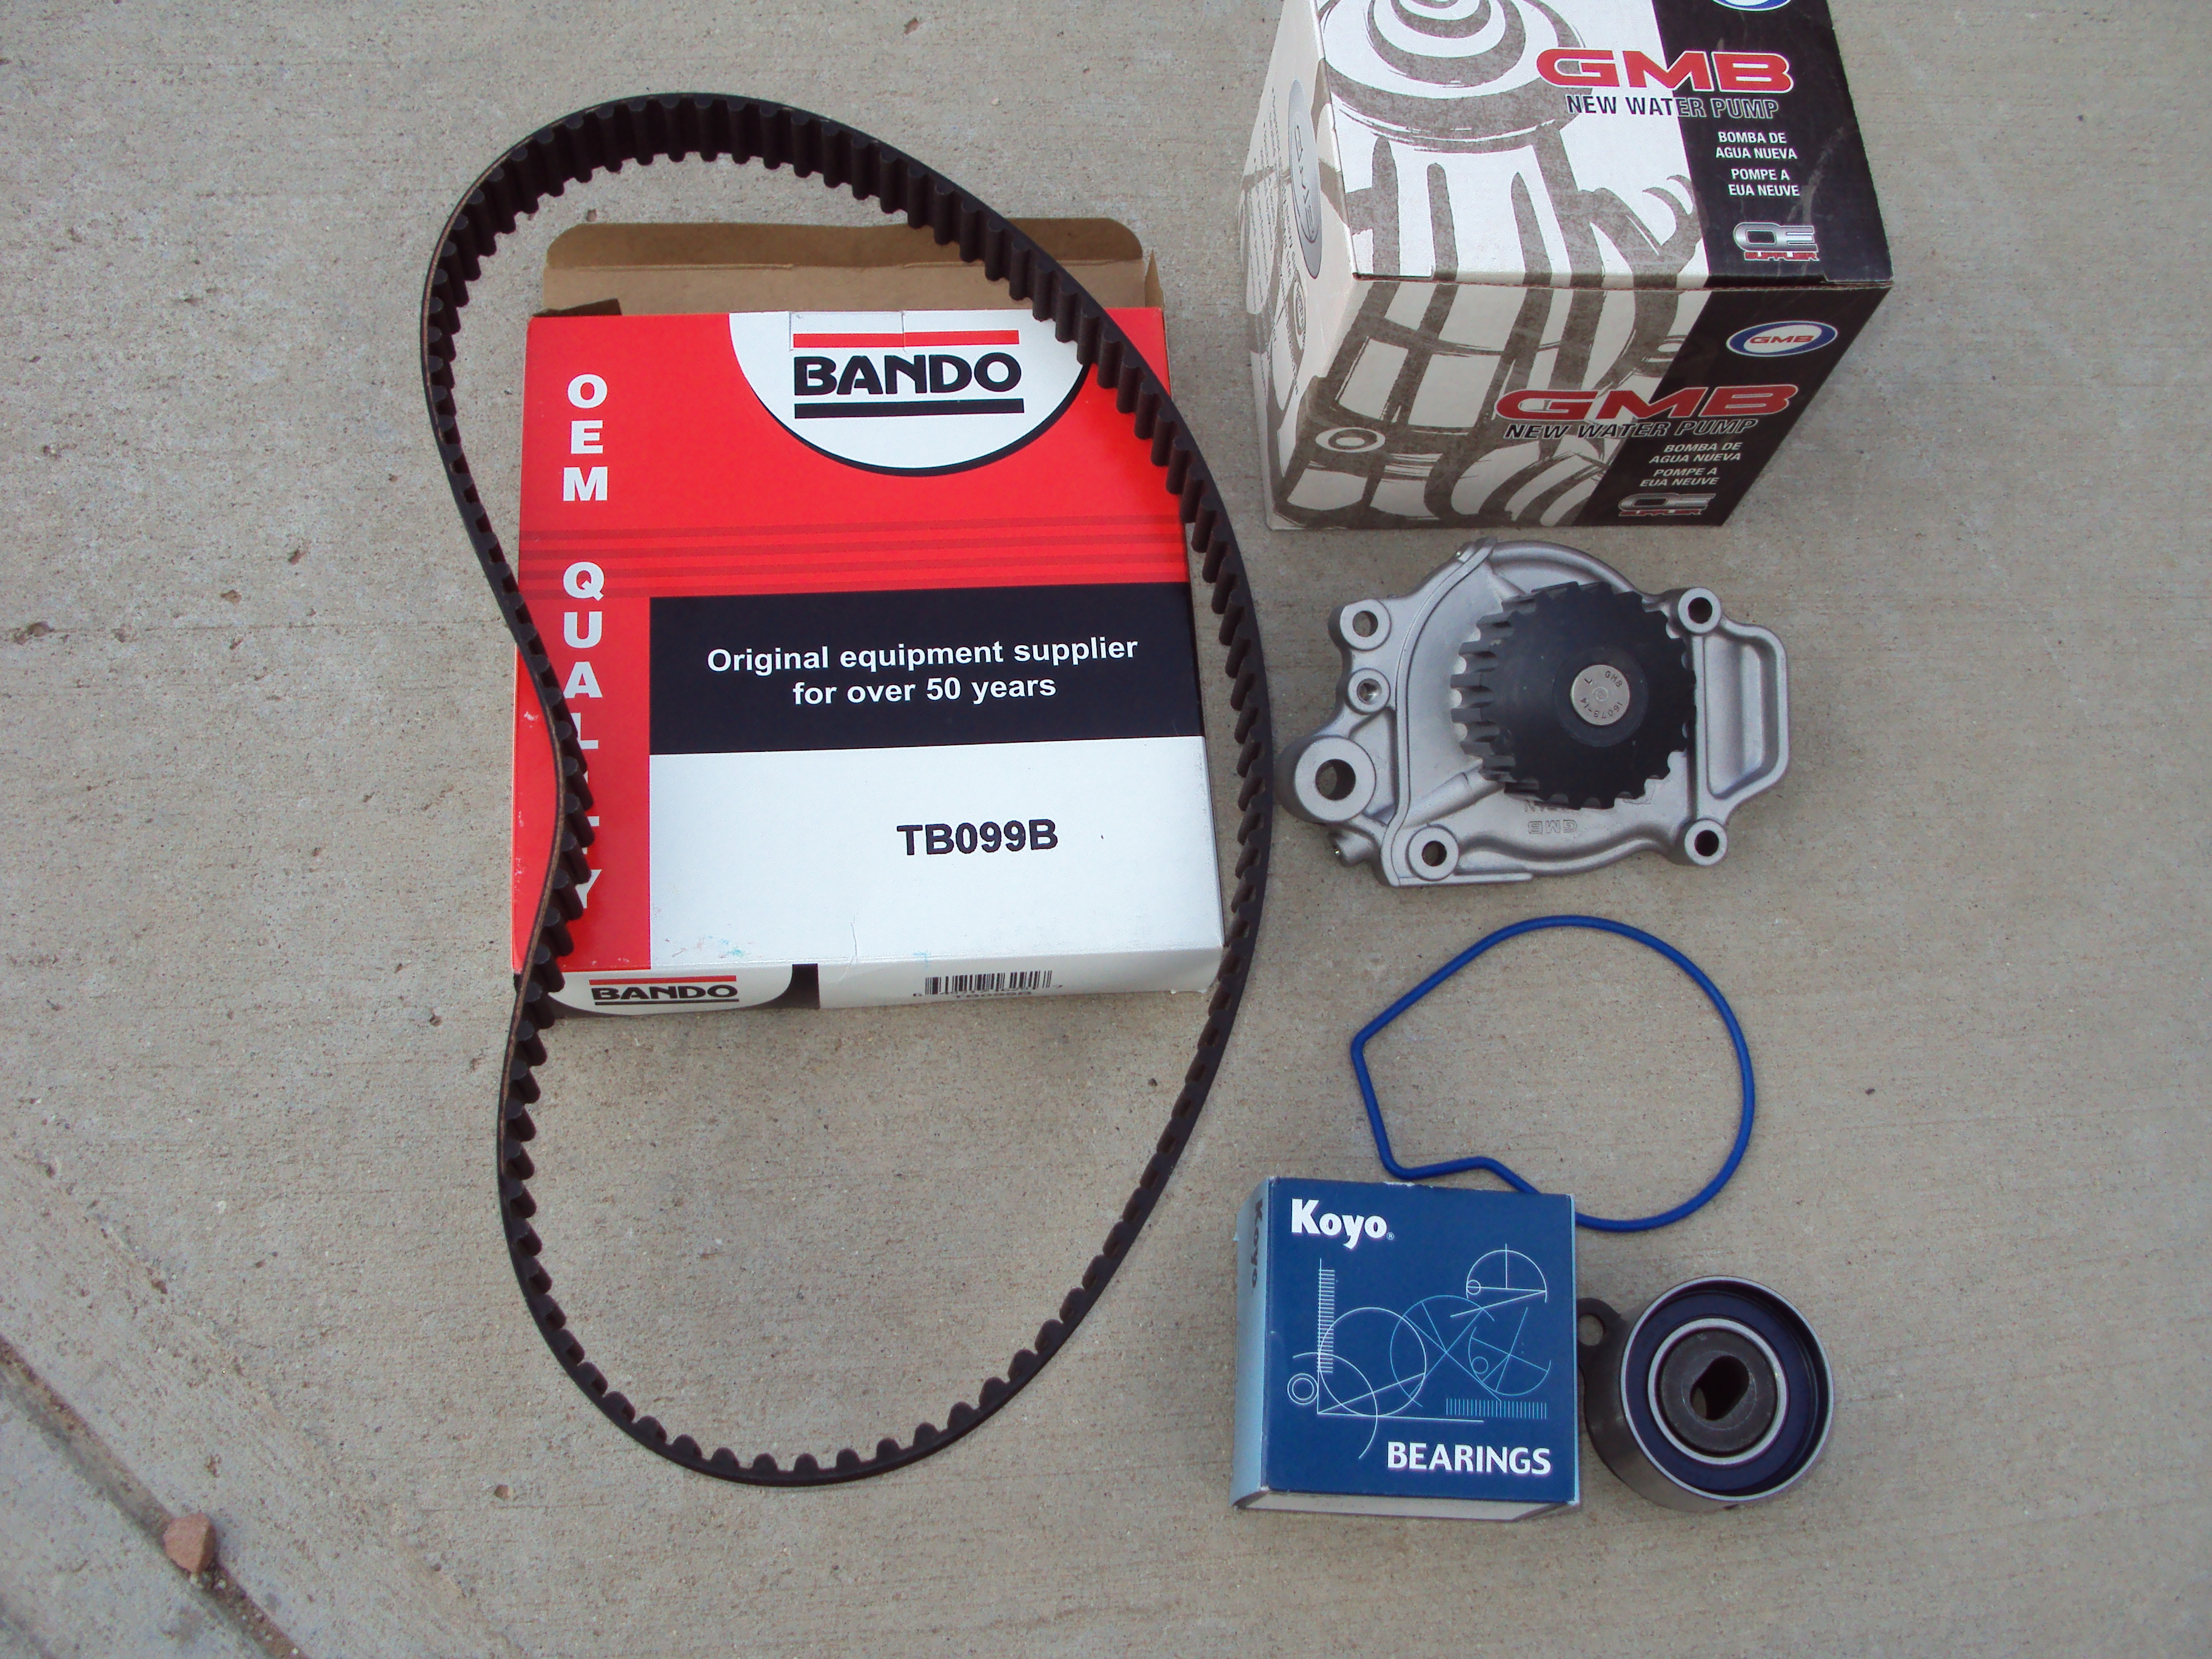 Timing belt kit for 85-87 civic/crx